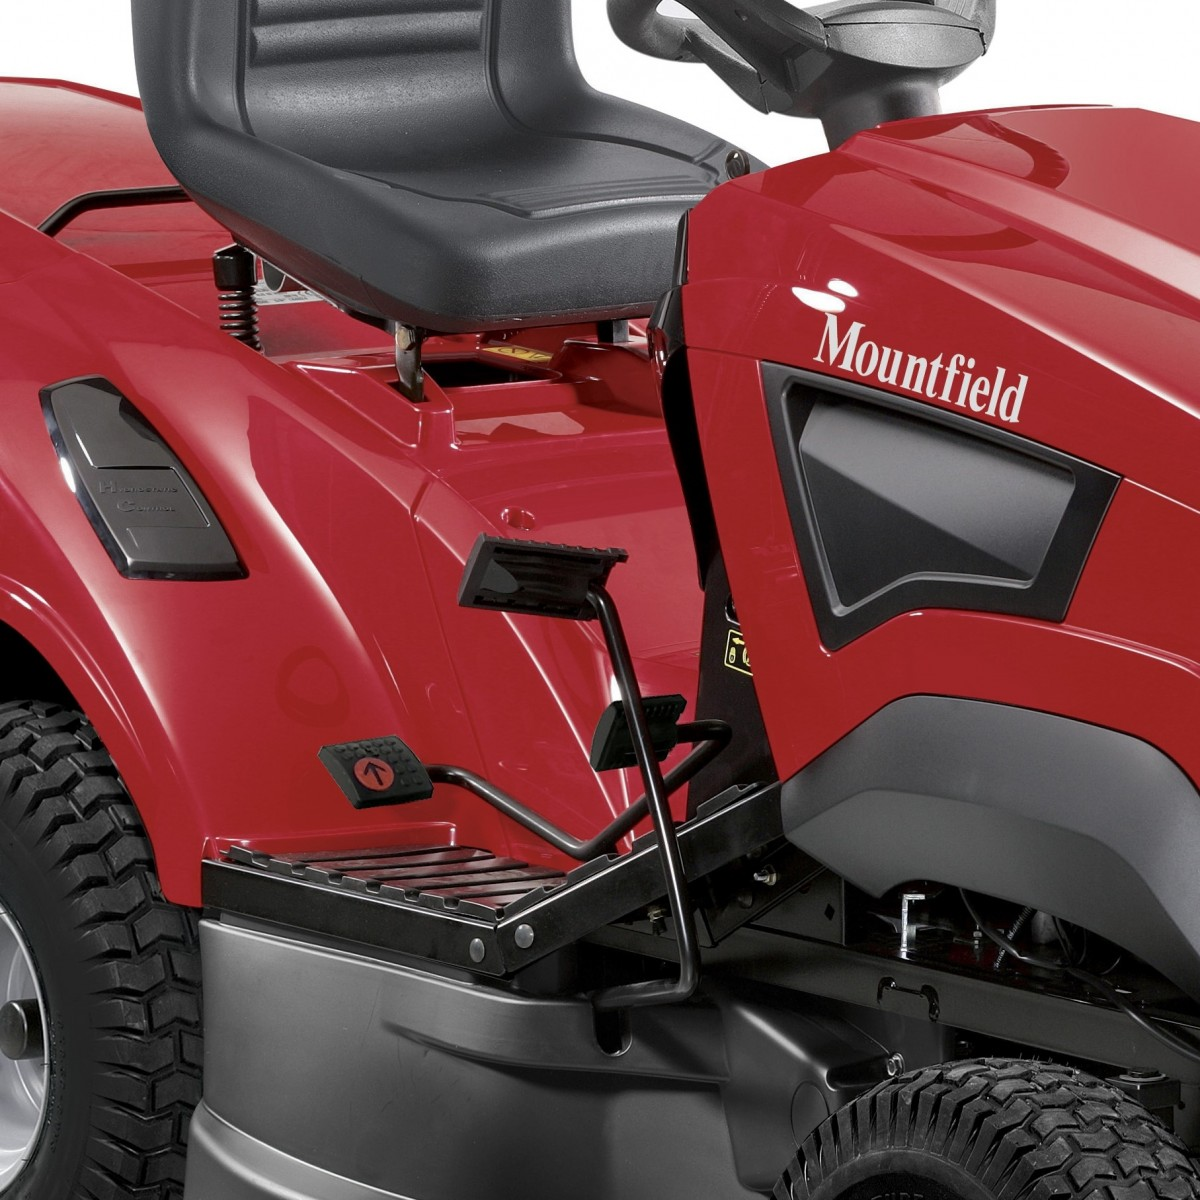 Mountfiedl 1736H Lawn Tractor